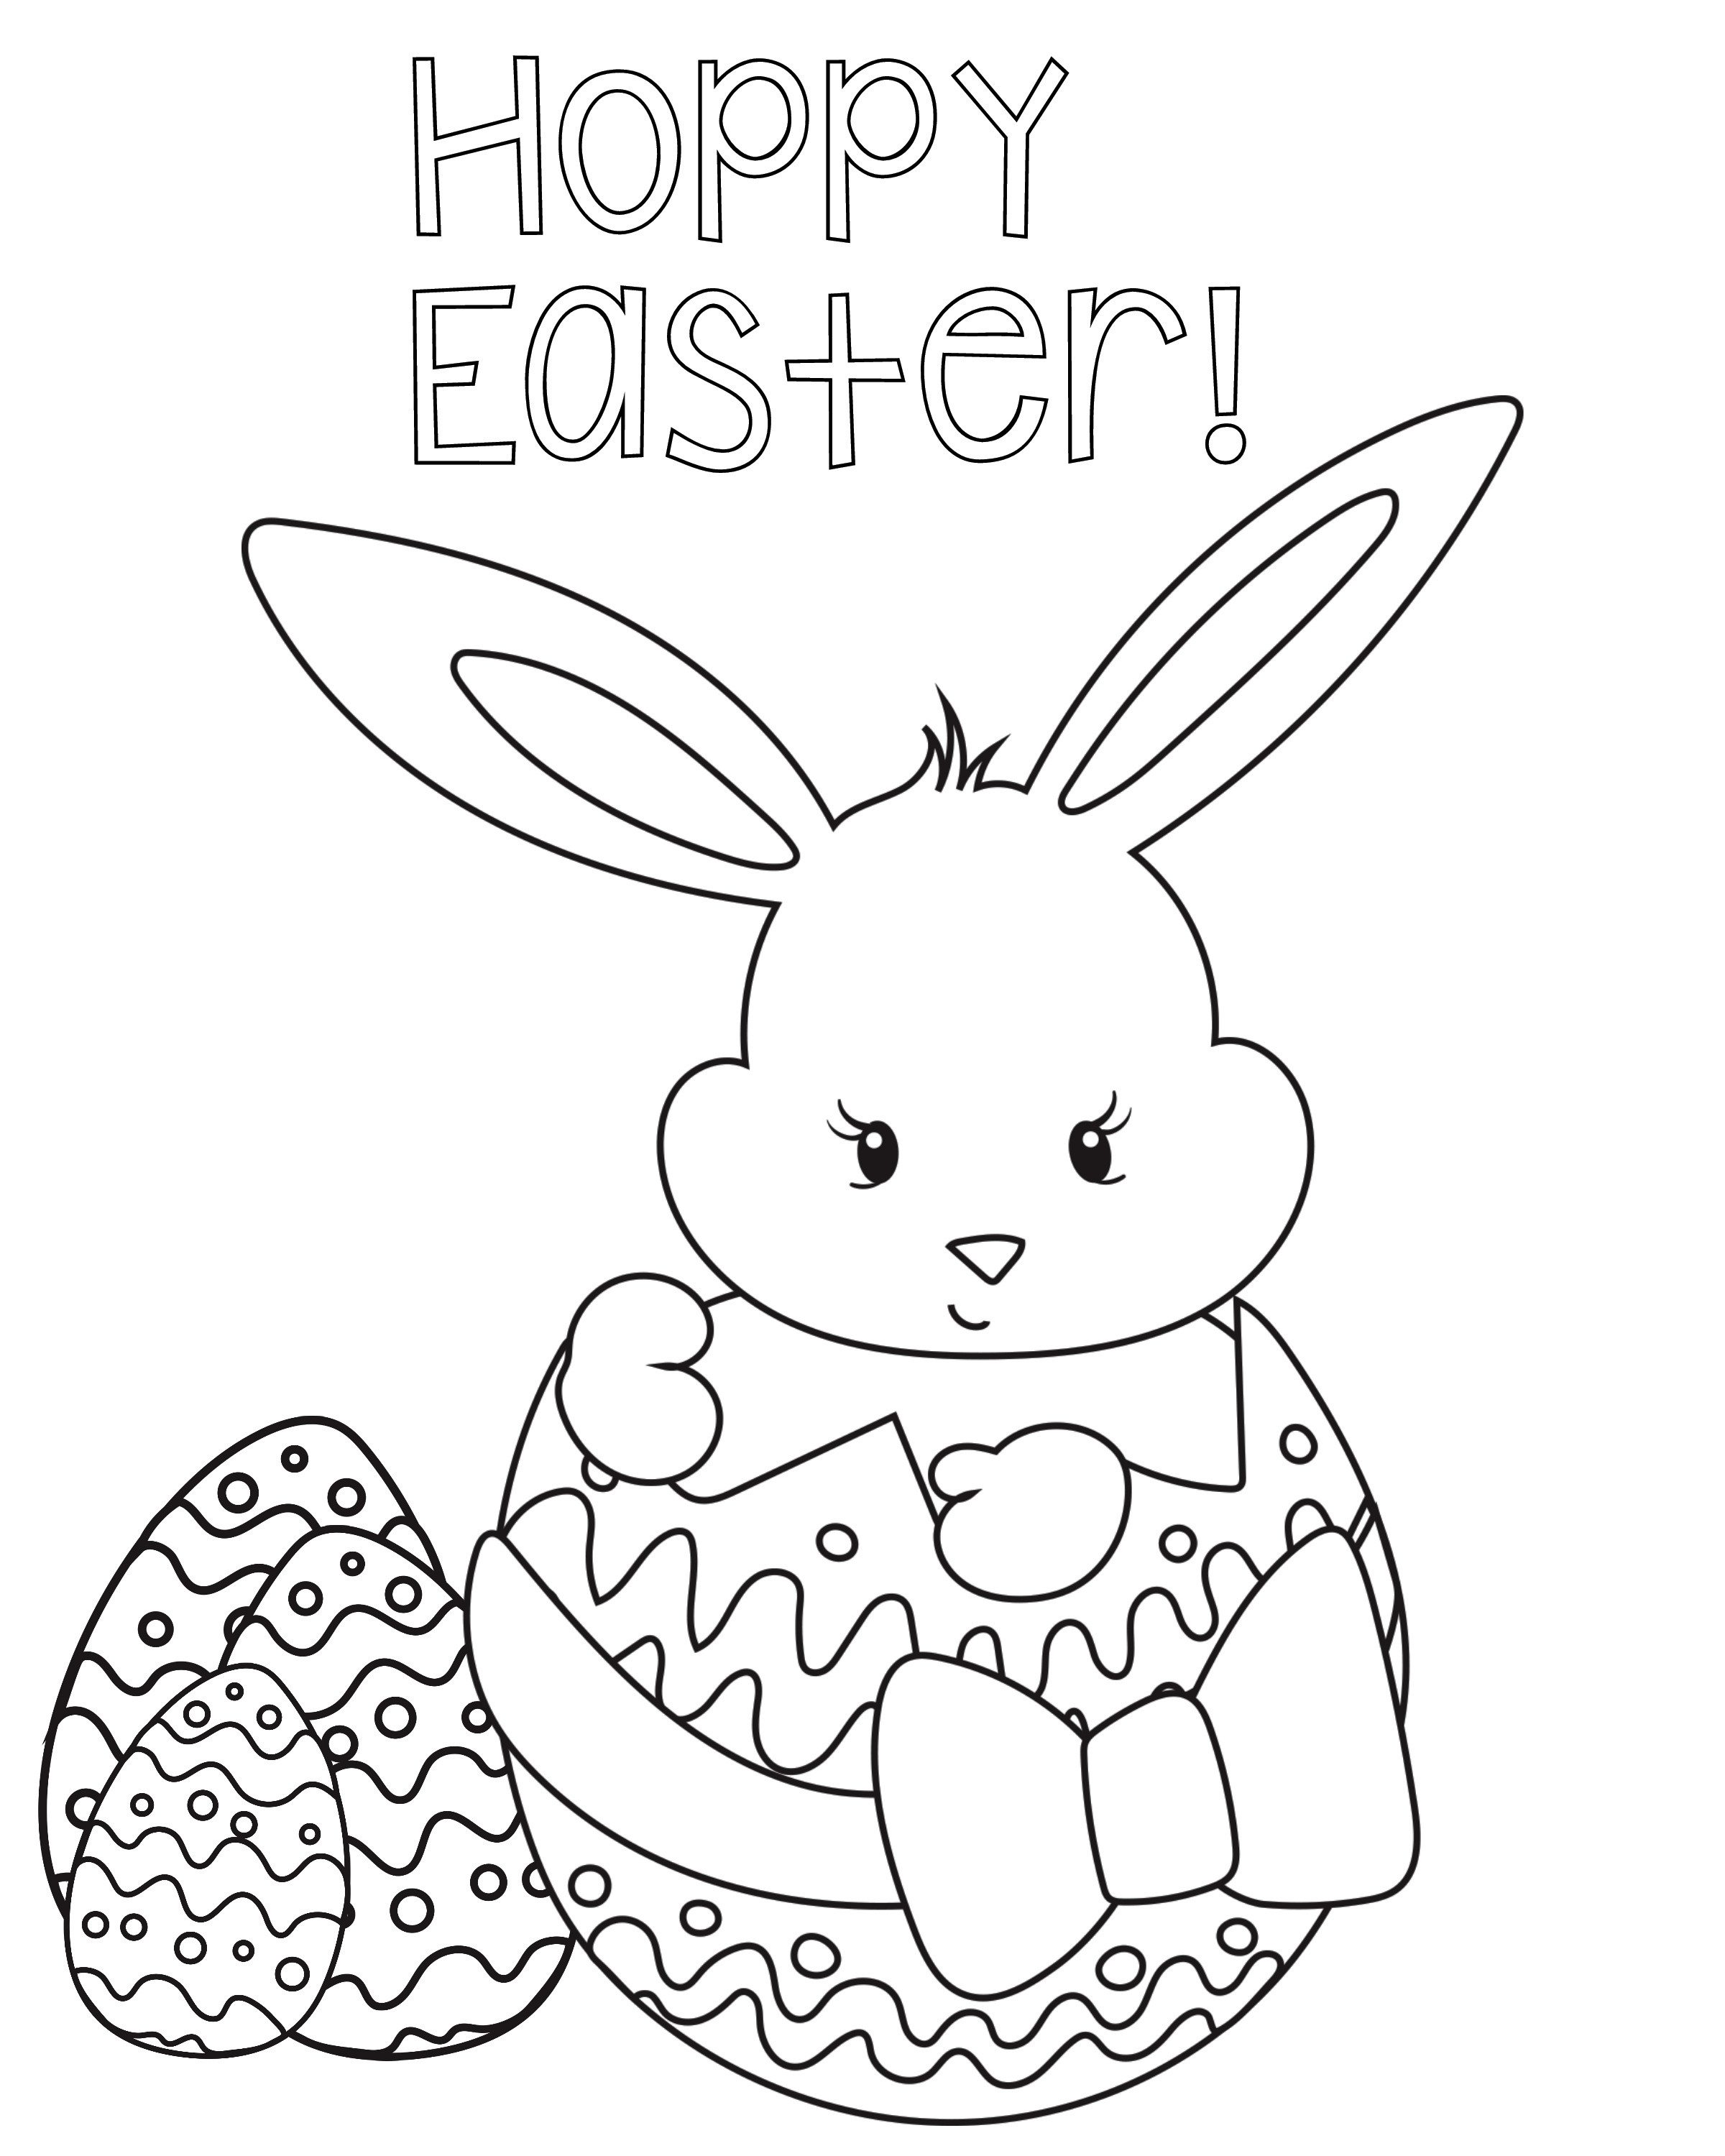 Free Printable Coloring Books For Toddlers  Happy Easter Coloring Pages Best Coloring Pages For Kids